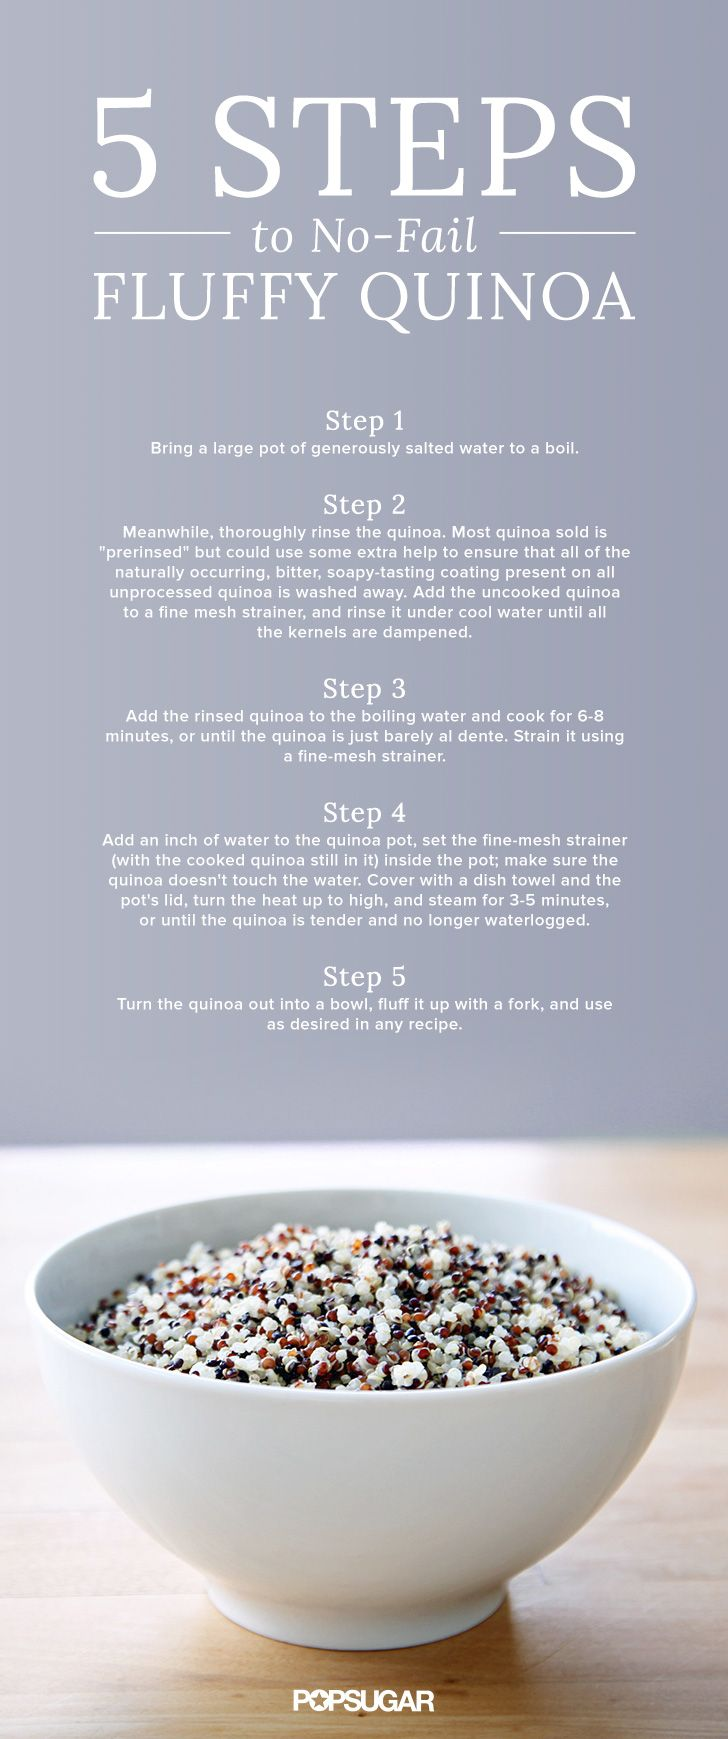 5 Steps To Nofail, Fluffy Quinoa How To Cook